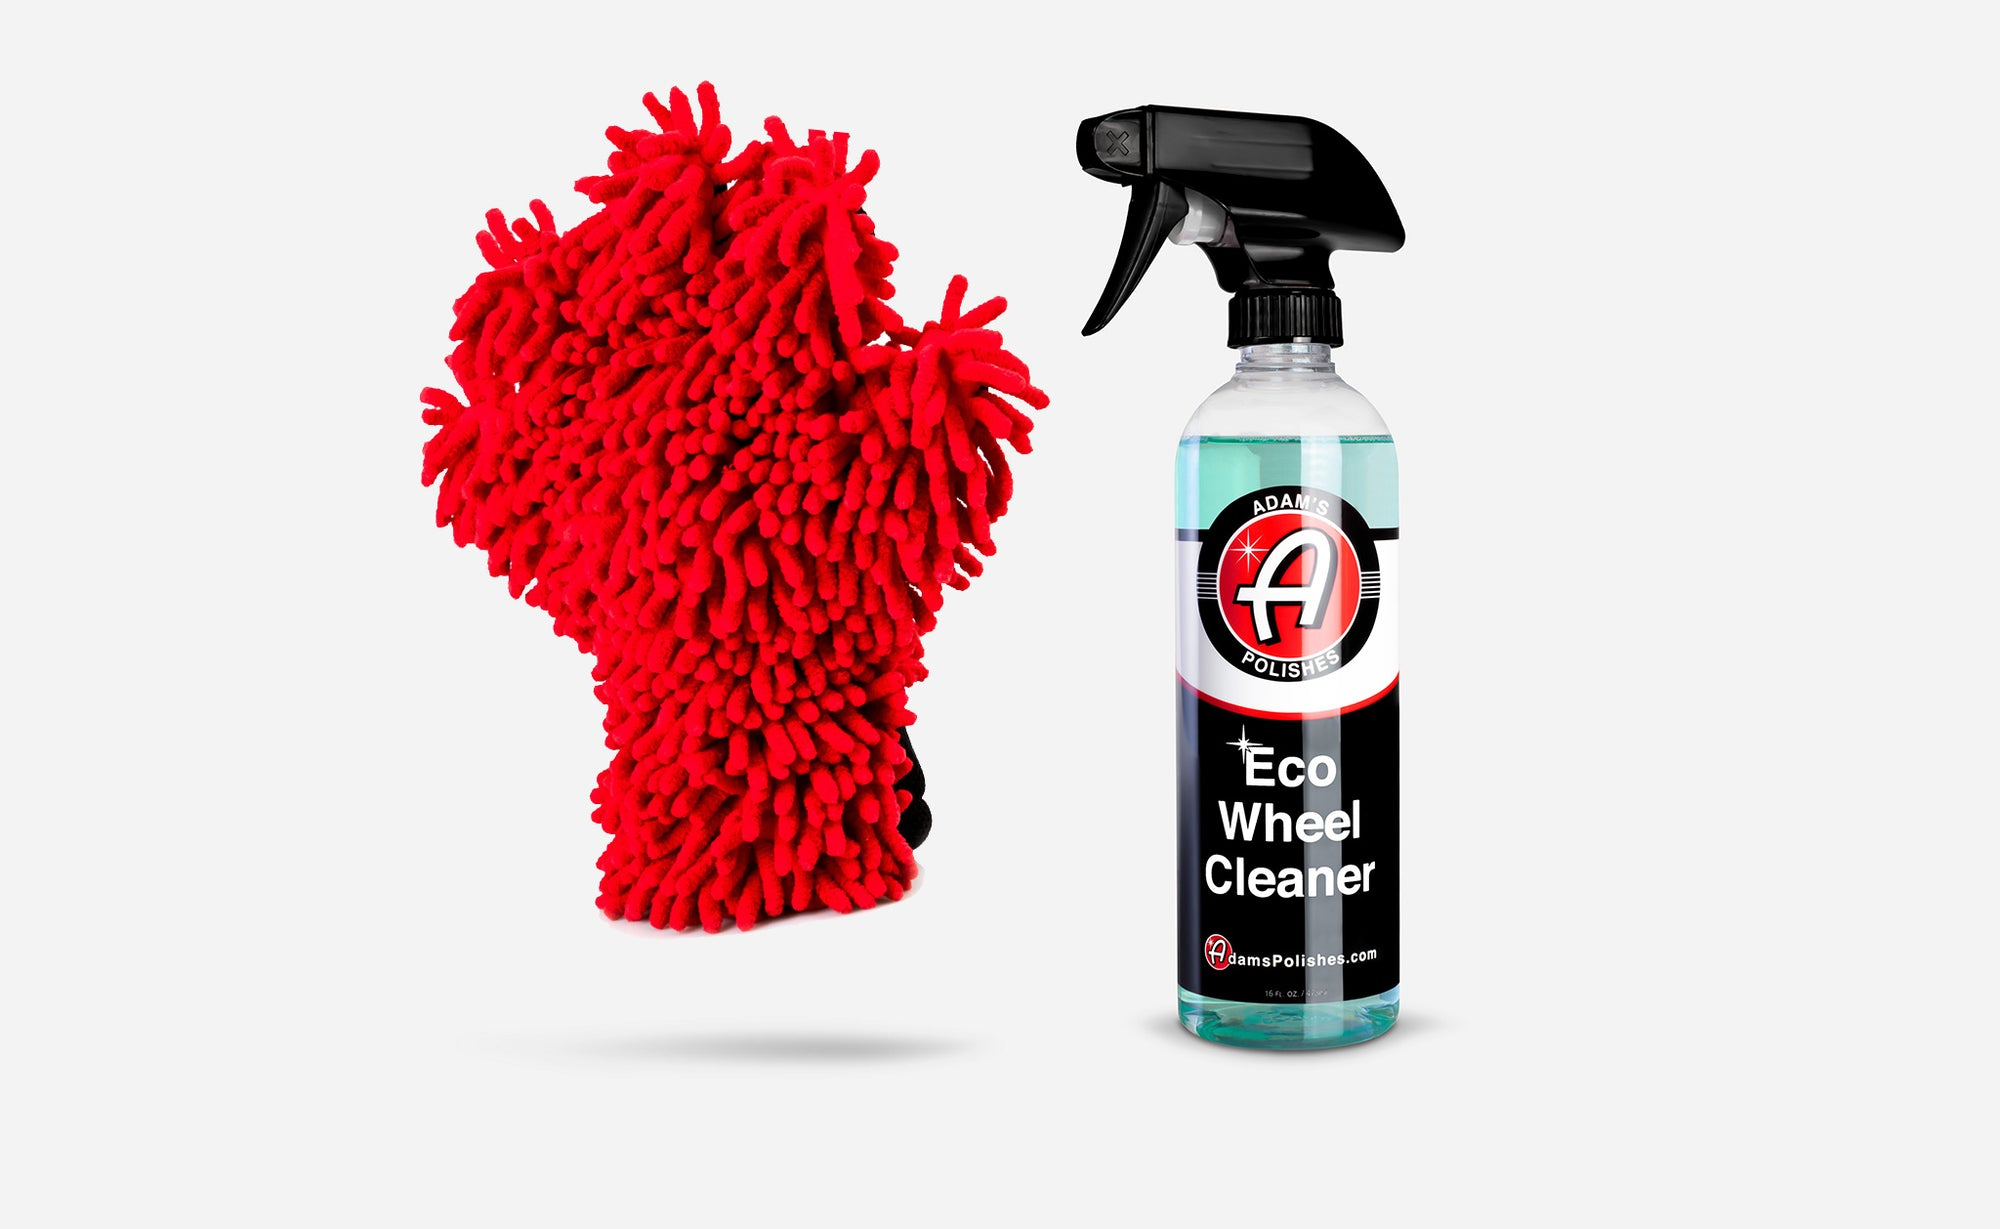 Adam's Eco Wheel Cleaner & Wheel Wash Mitt Combo